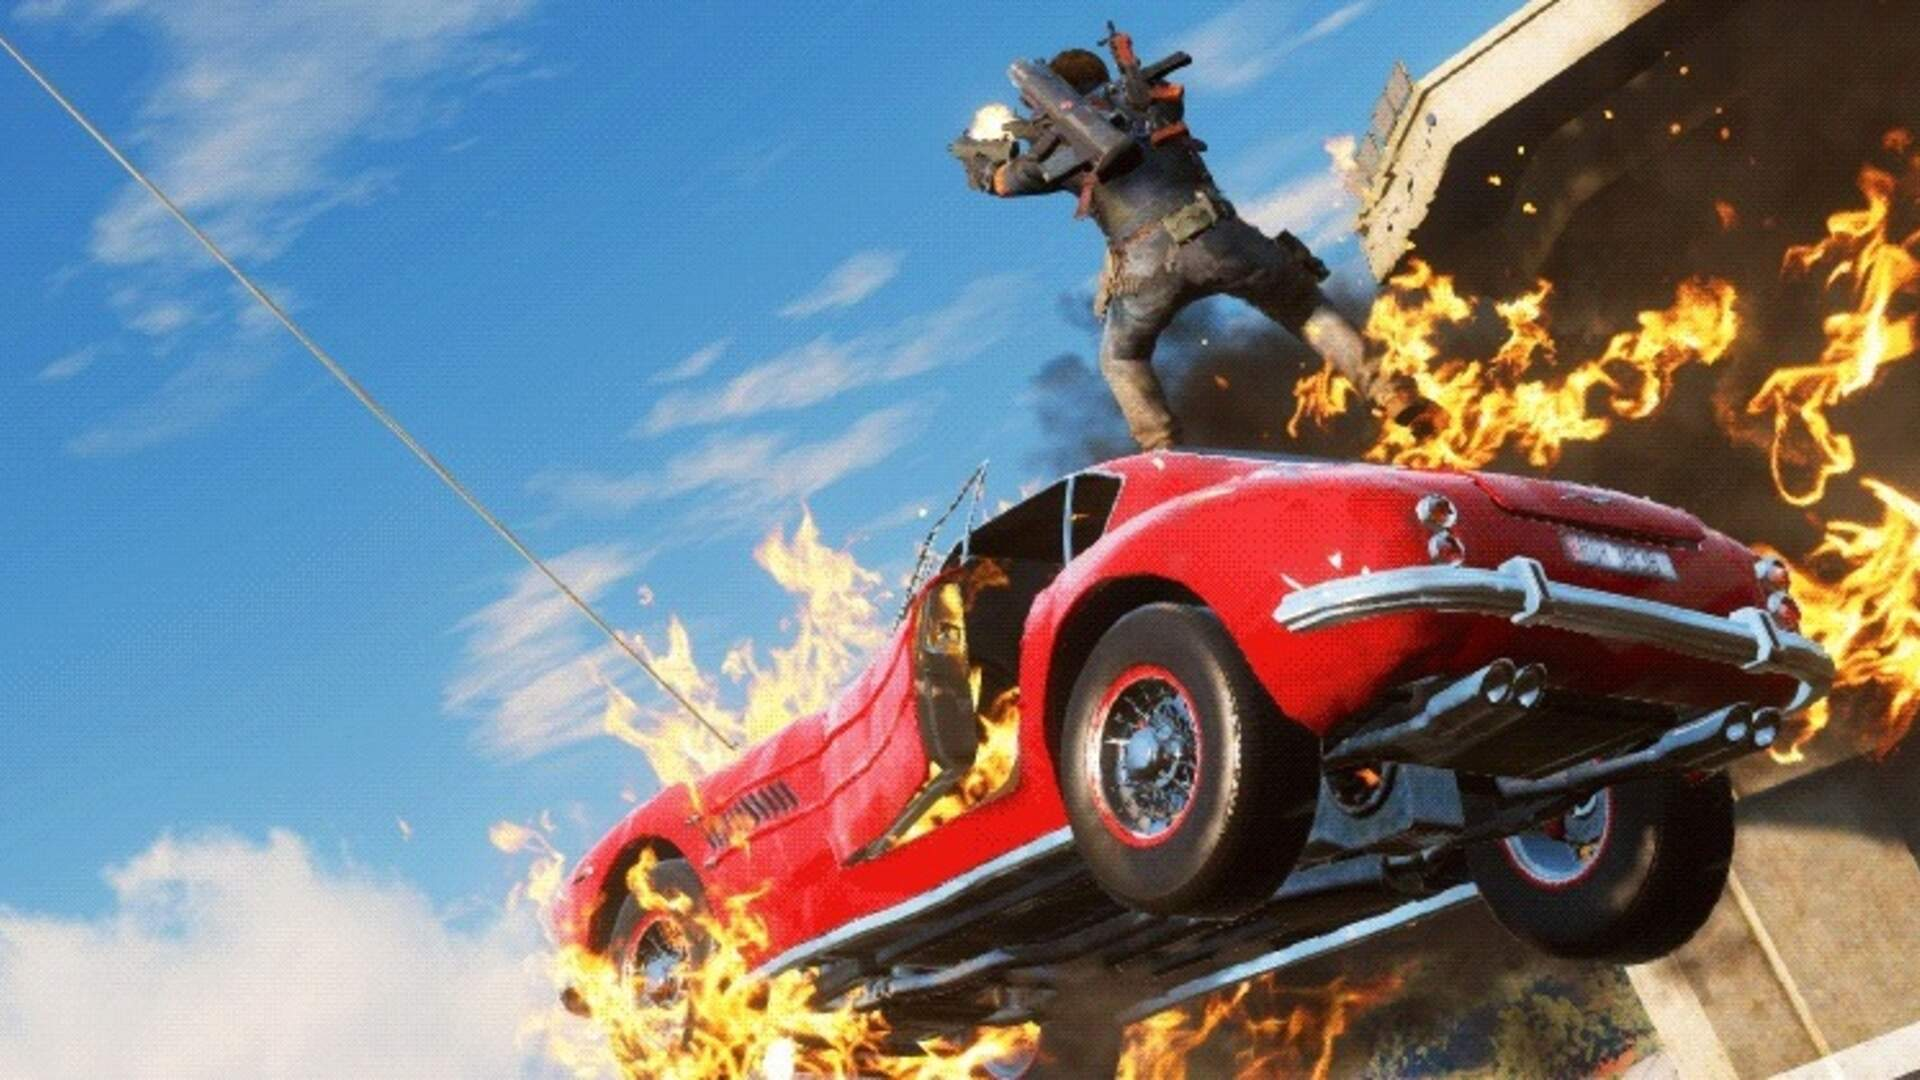 Just Cause 3 Story Mission Guide: Conflicting Interests, Locate the Bavarium Scanner